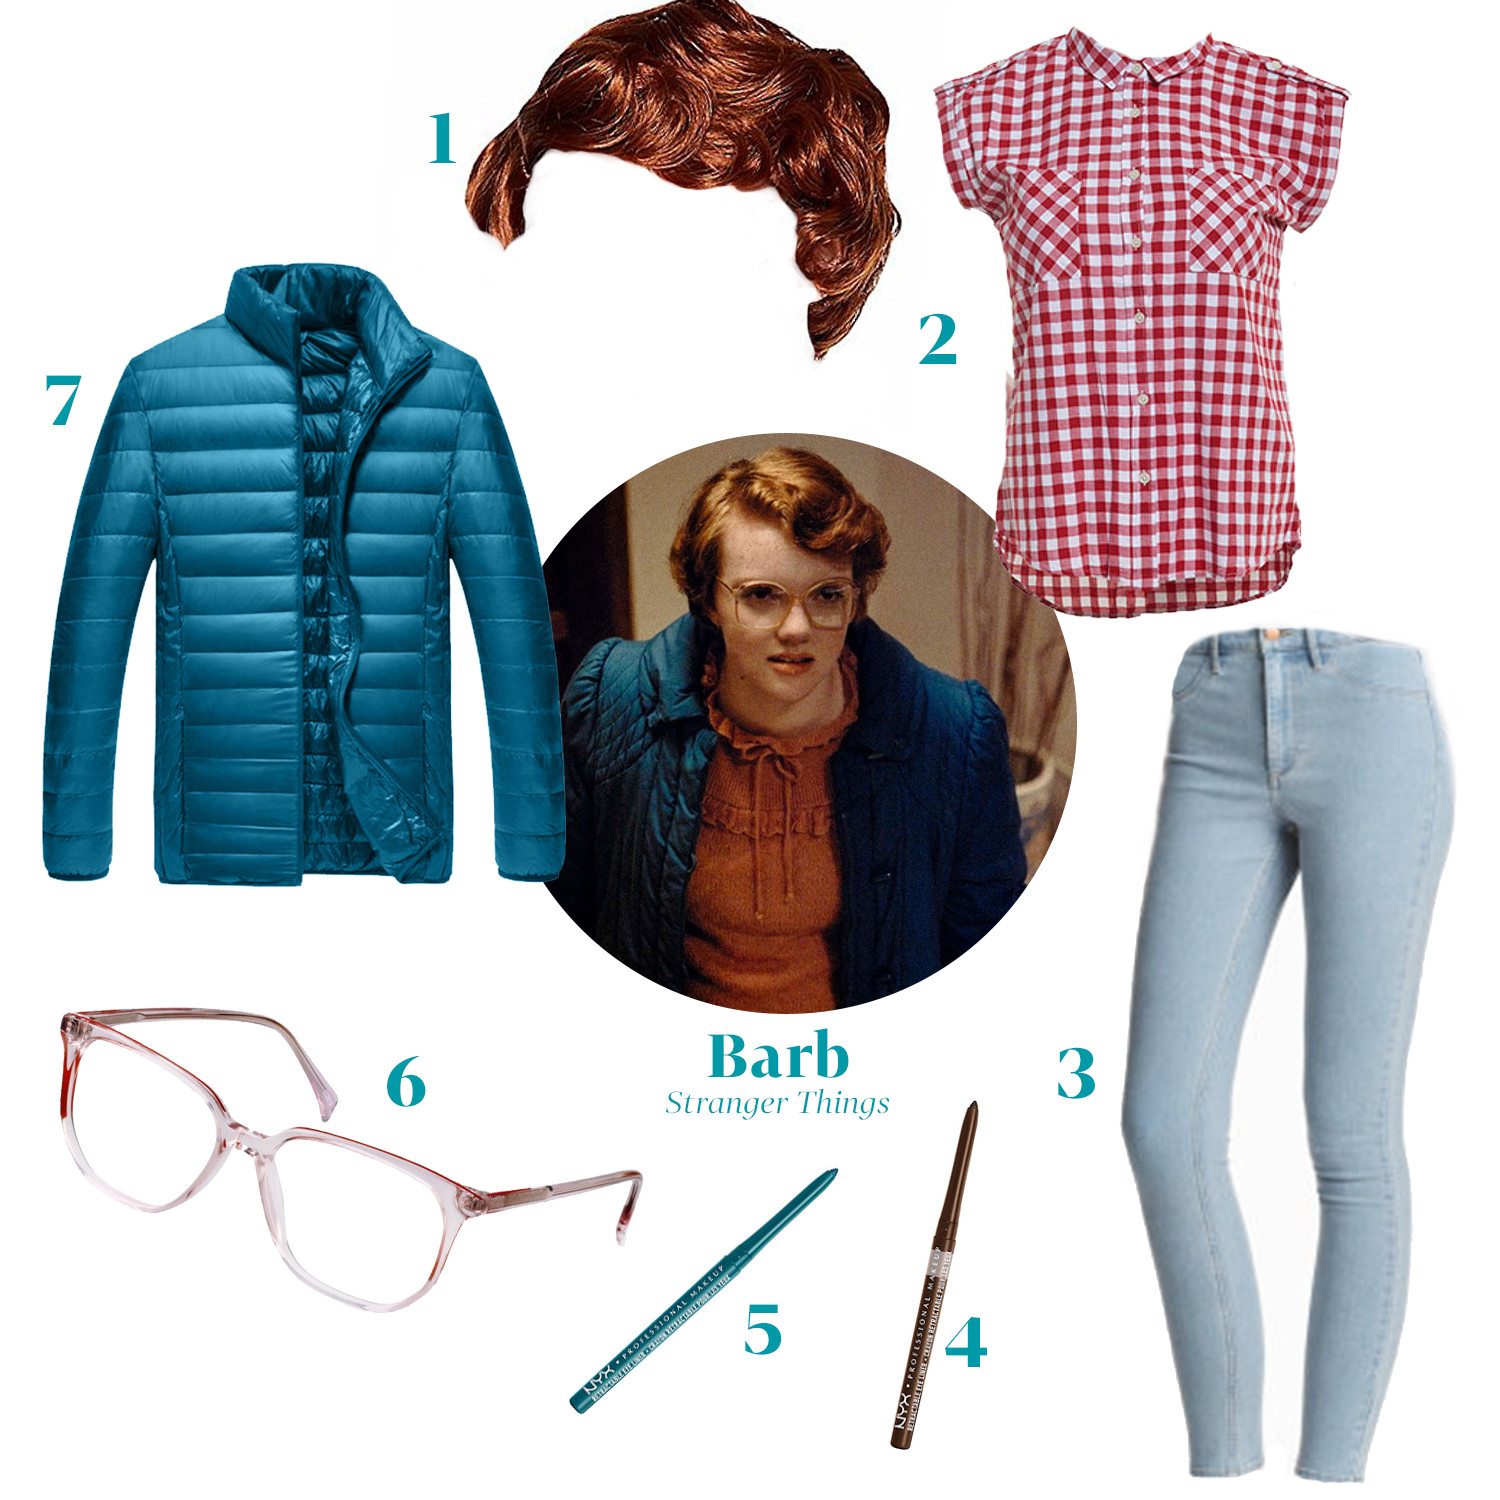 barb stranger things halloween costume